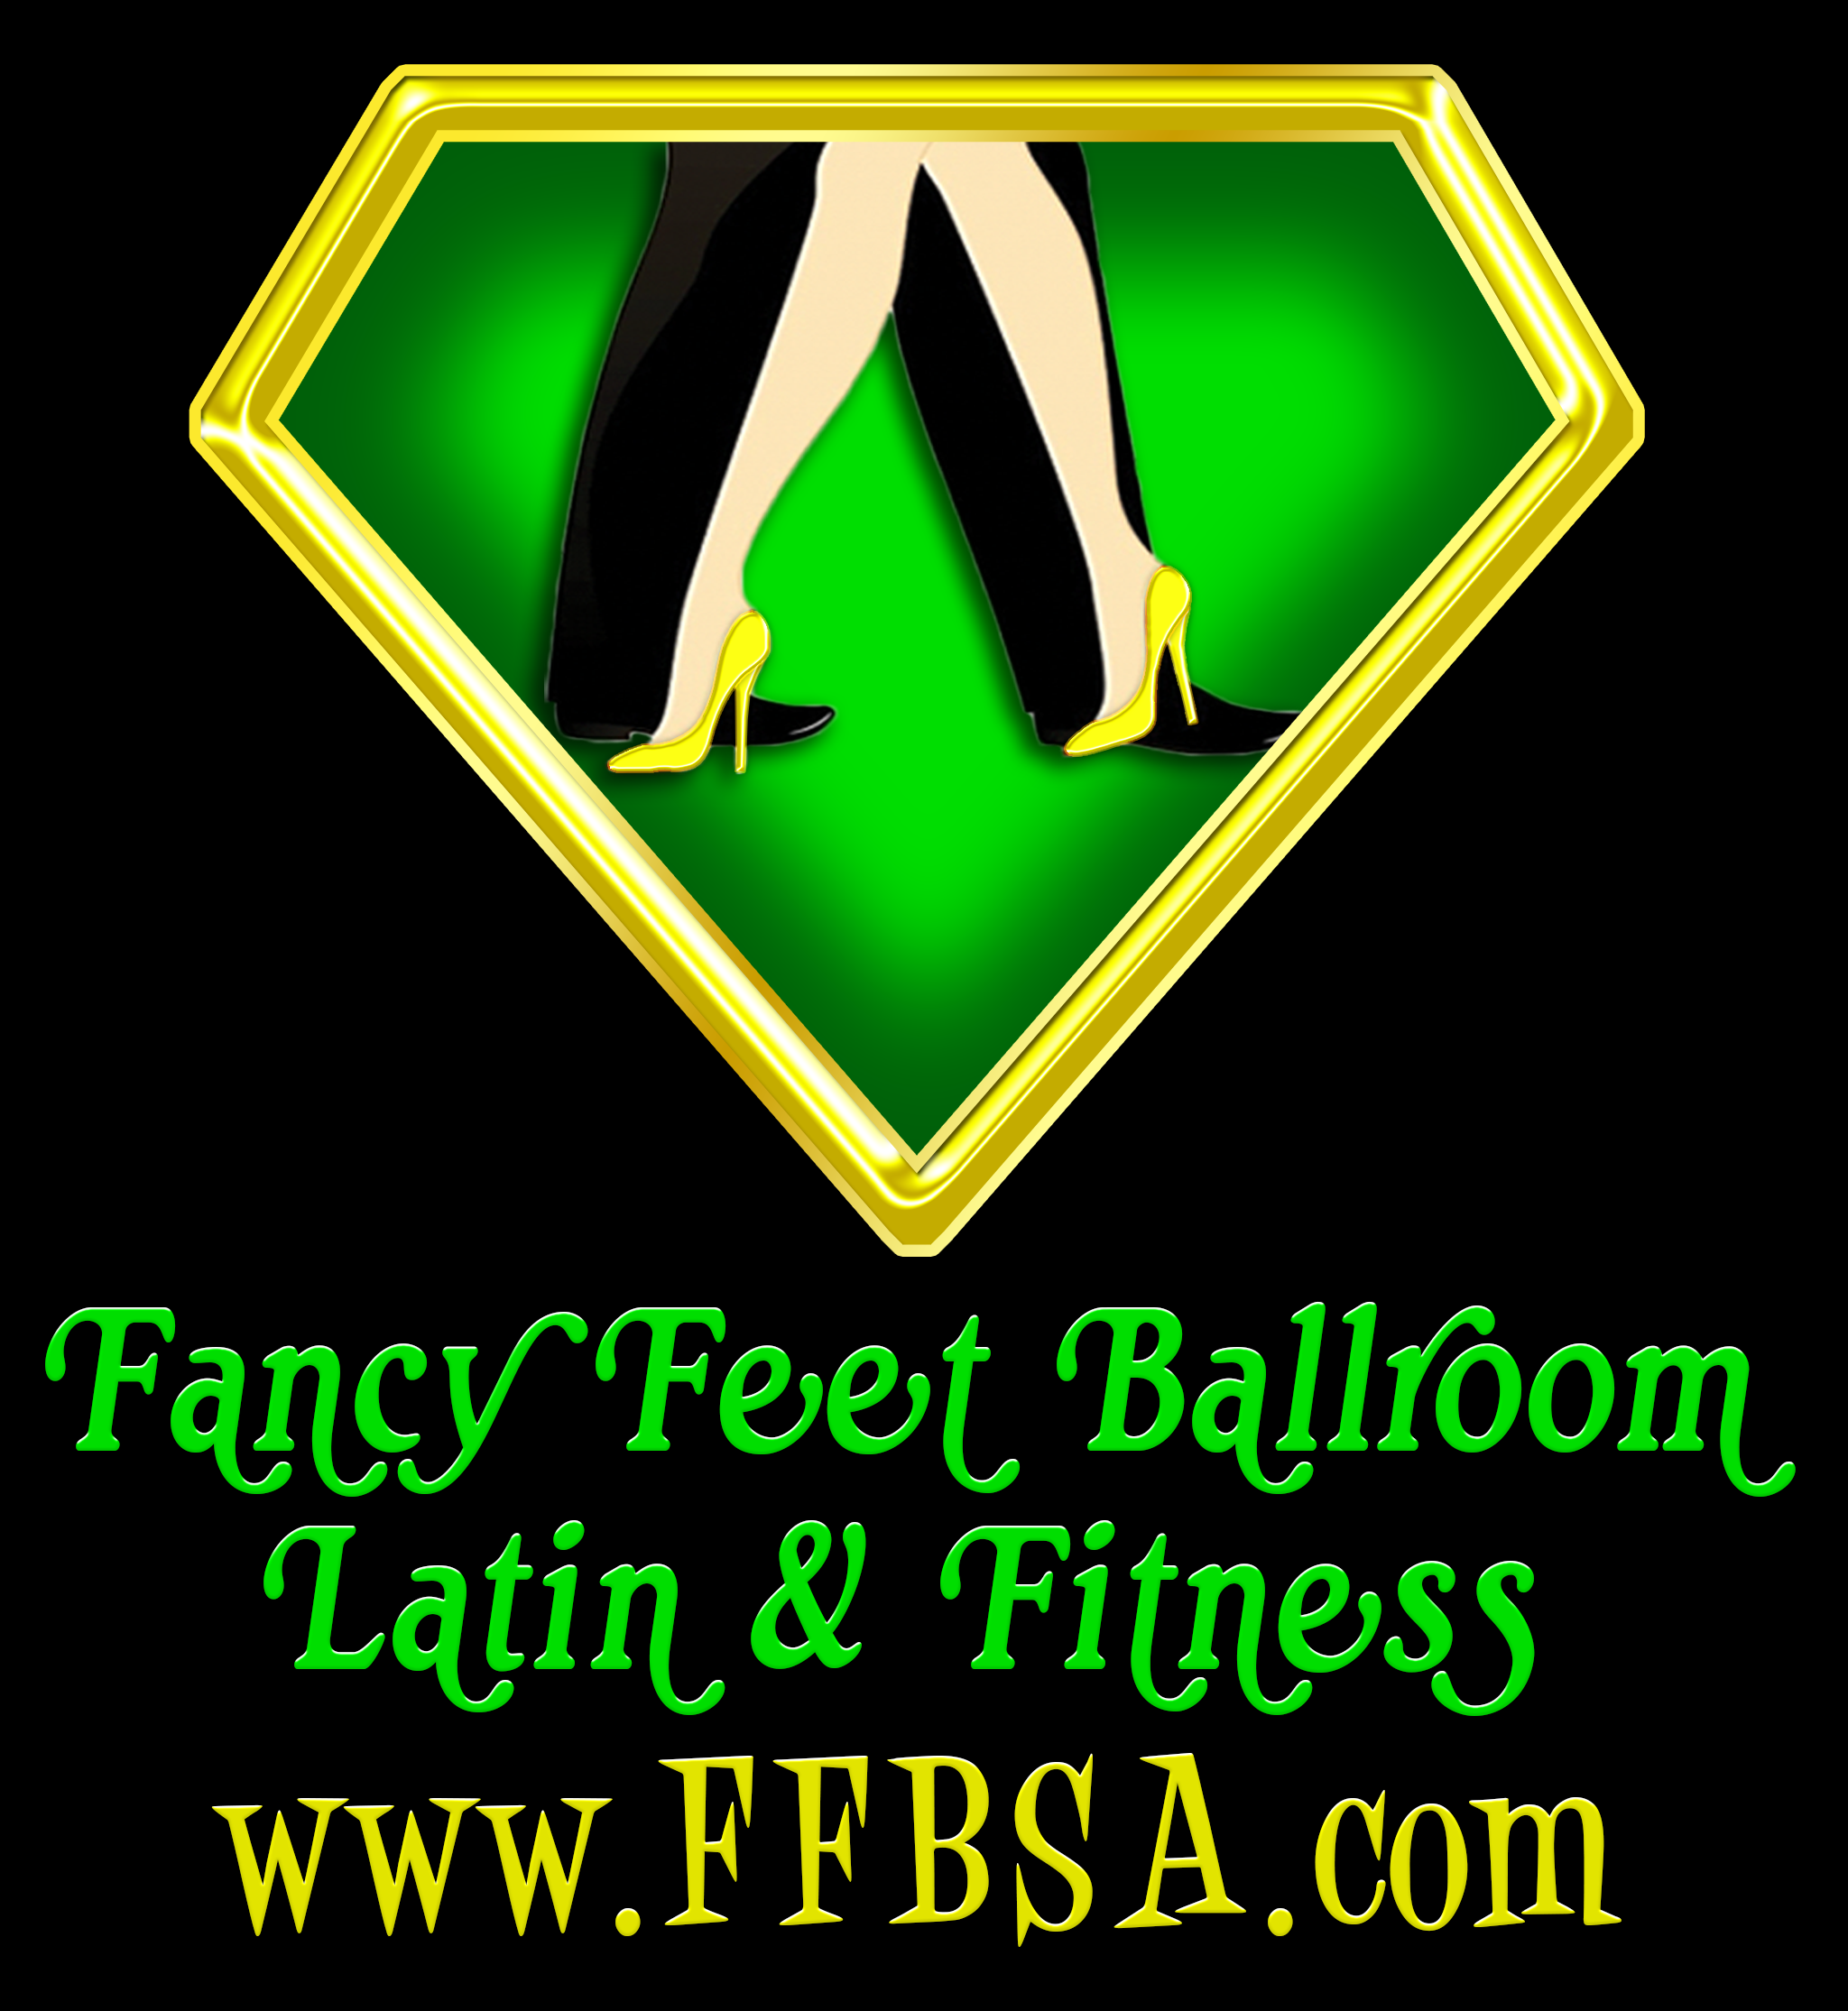 Fancy Feet Ballroom, Latin & Fitness